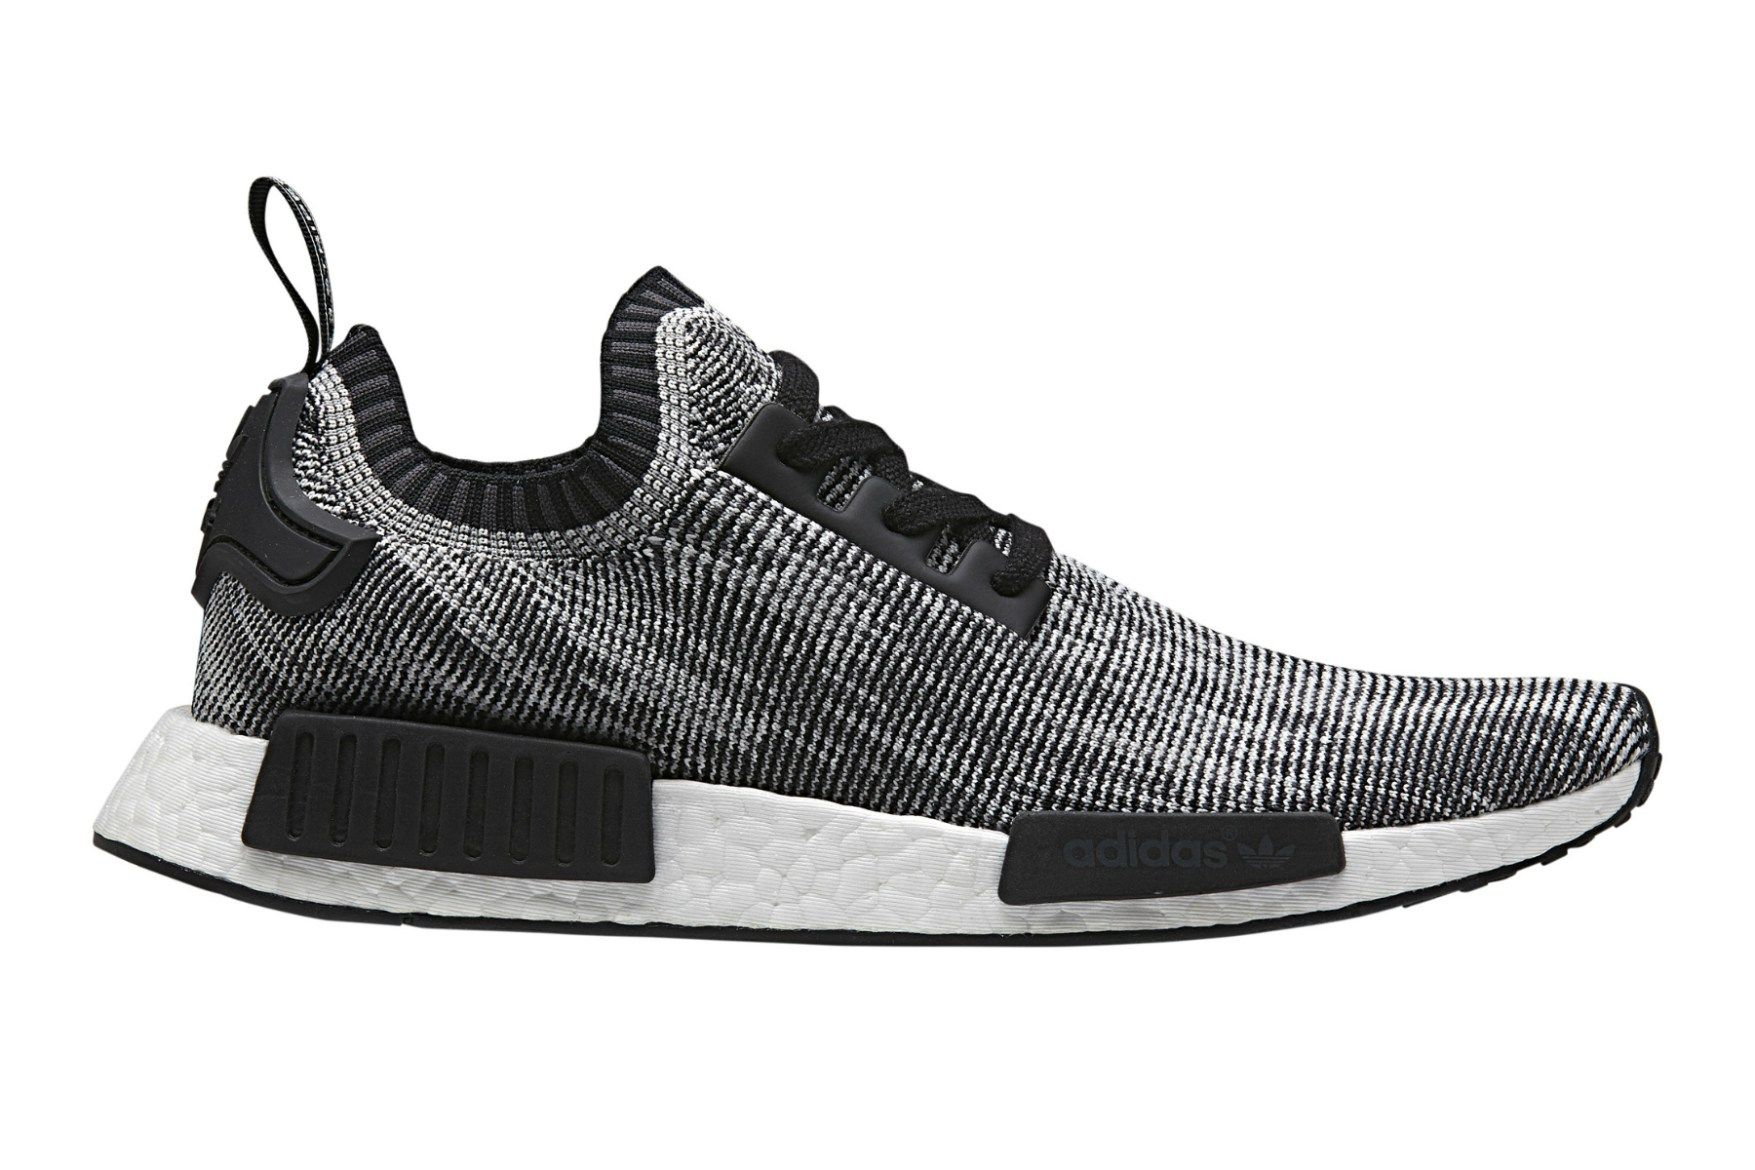 Shoes men � Introducing the adidas Originals NMD Primeknit